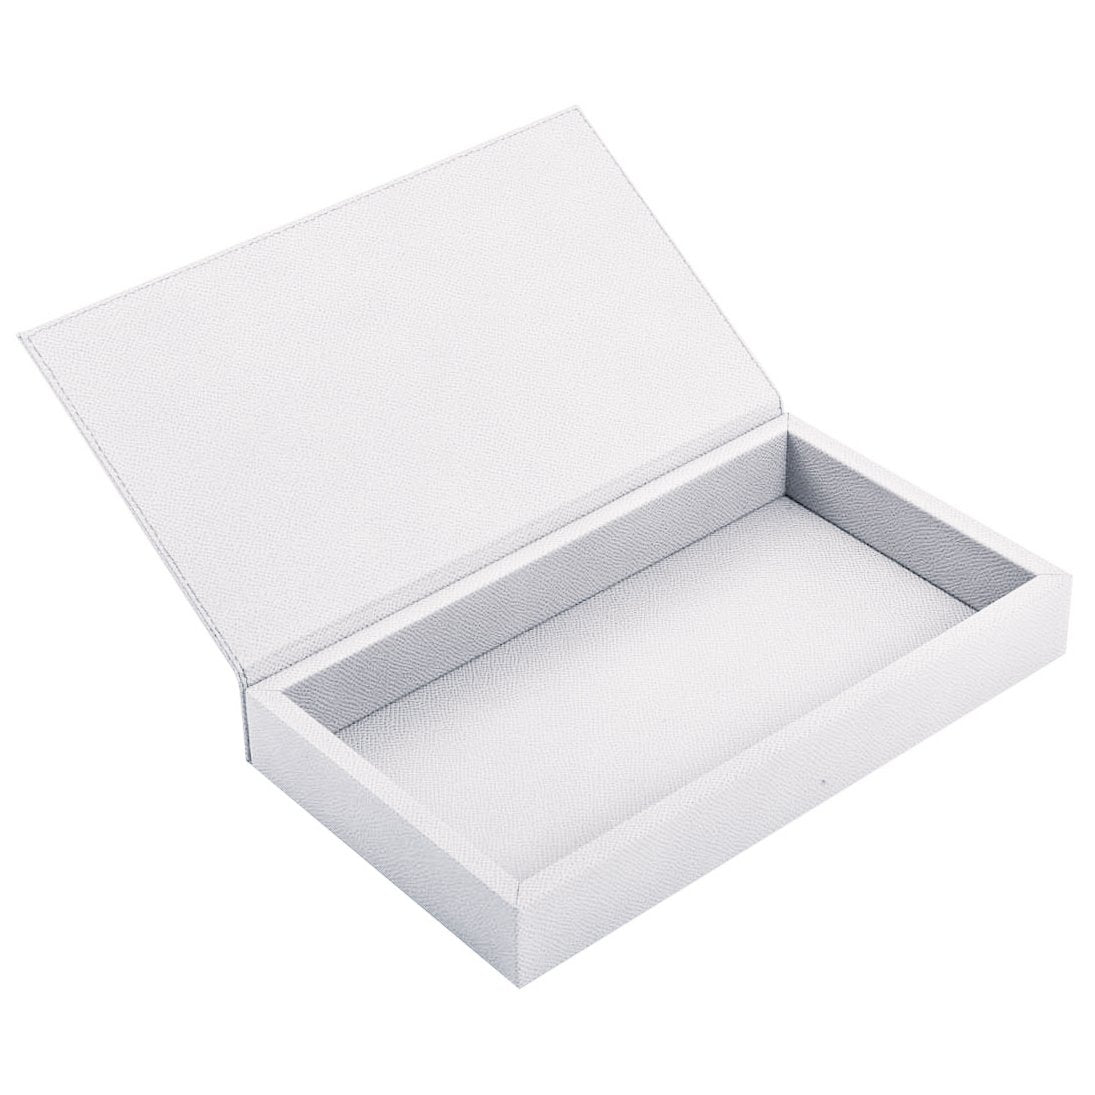 White Rectangular Box with Leather Lid